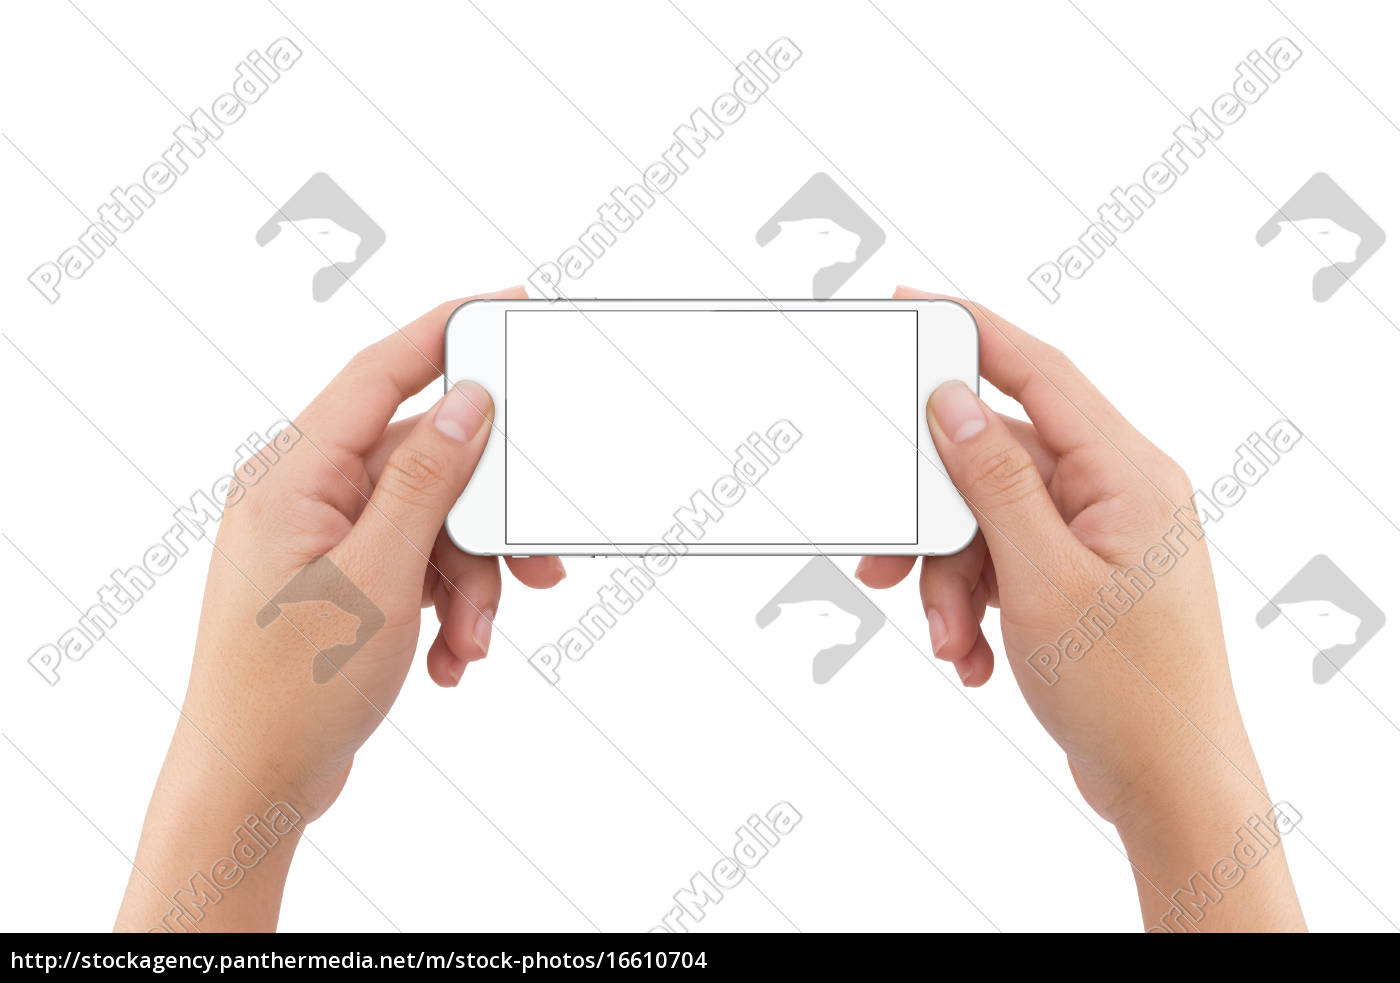 hand, holding, phone, blank, screen, isolated - 16610704